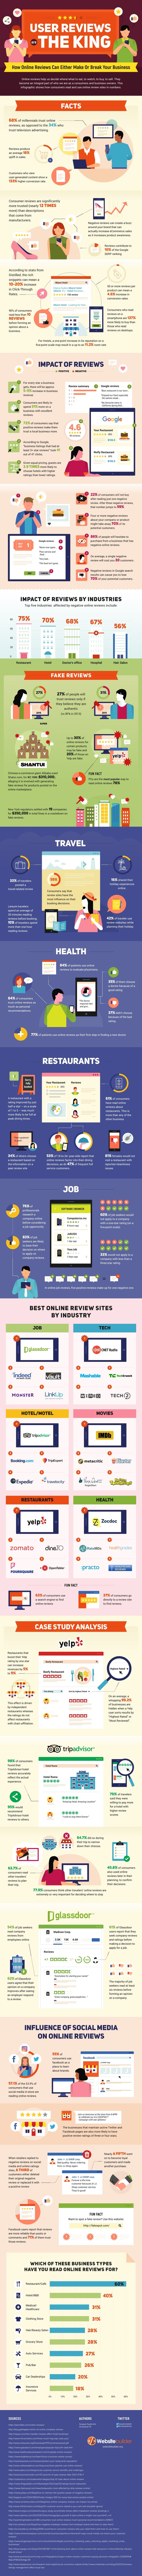 onlinereview-infographic.jpg